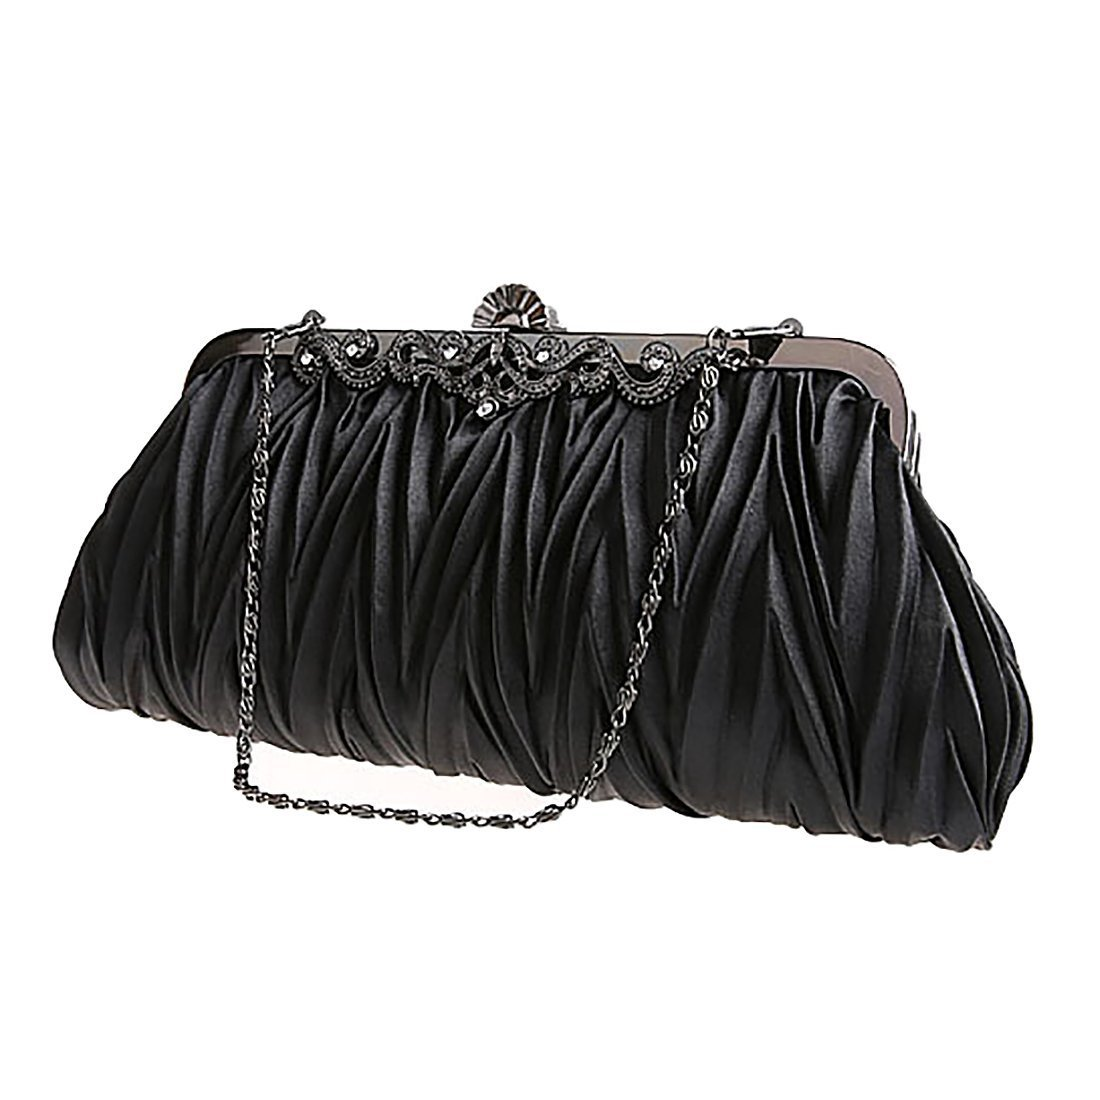 EROUGE Satin Purse Wallet Fashion Ladies Cocktail Evening Handbags Women Elegant Envelope Clutch (Black)